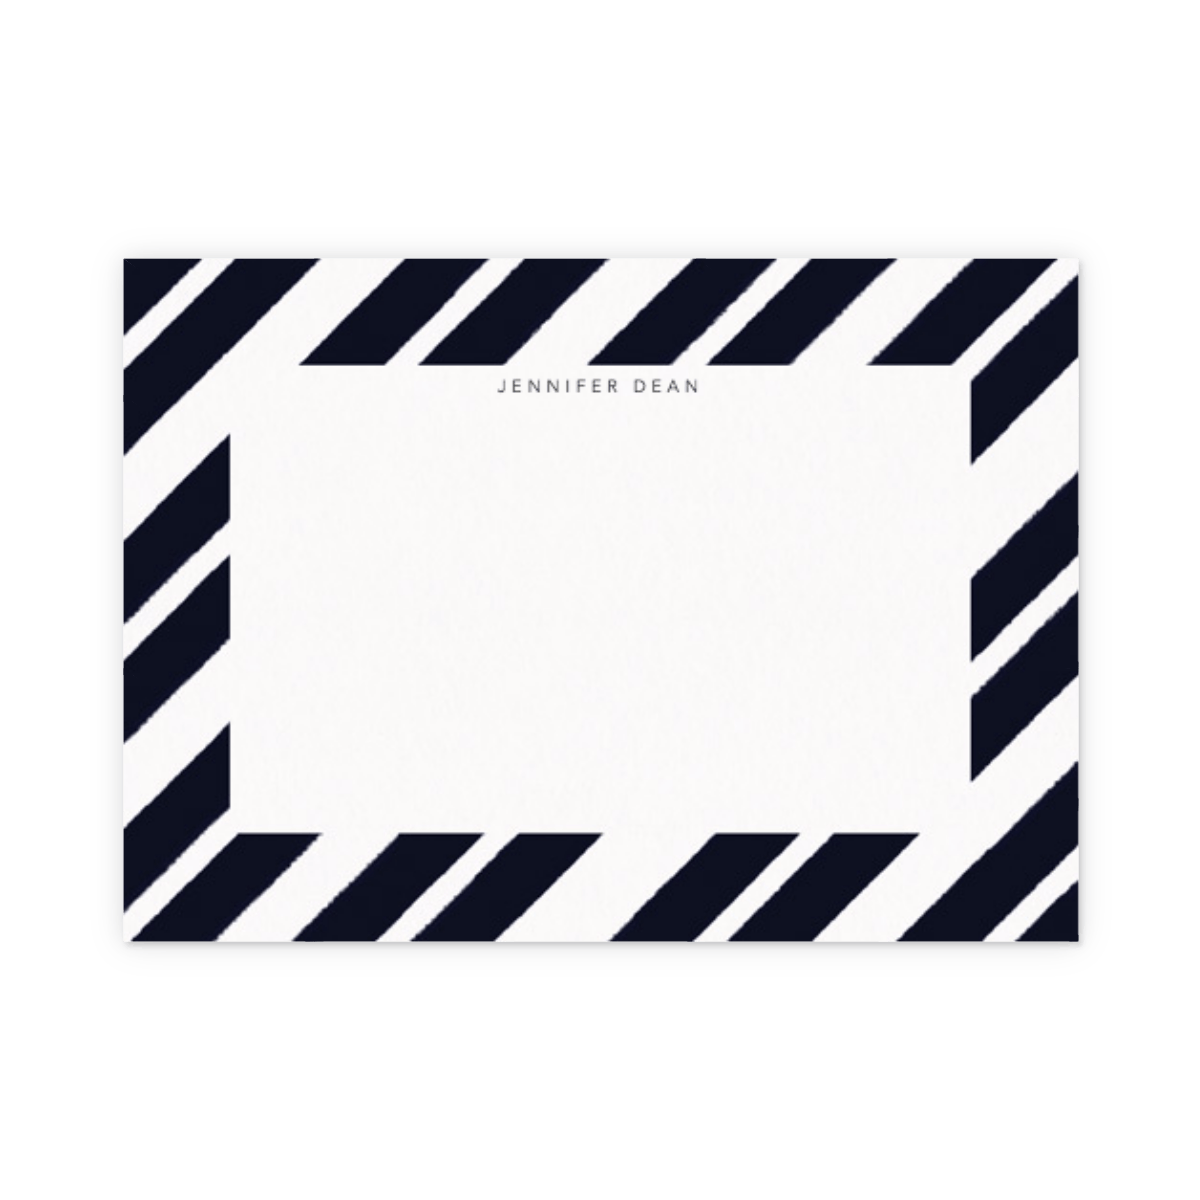 Https%3a%2f%2fwww.papier.com%2fproduct image%2f24075%2f10%2fnavy paint stripe 6025 front 1498037809.png?ixlib=rb 1.1